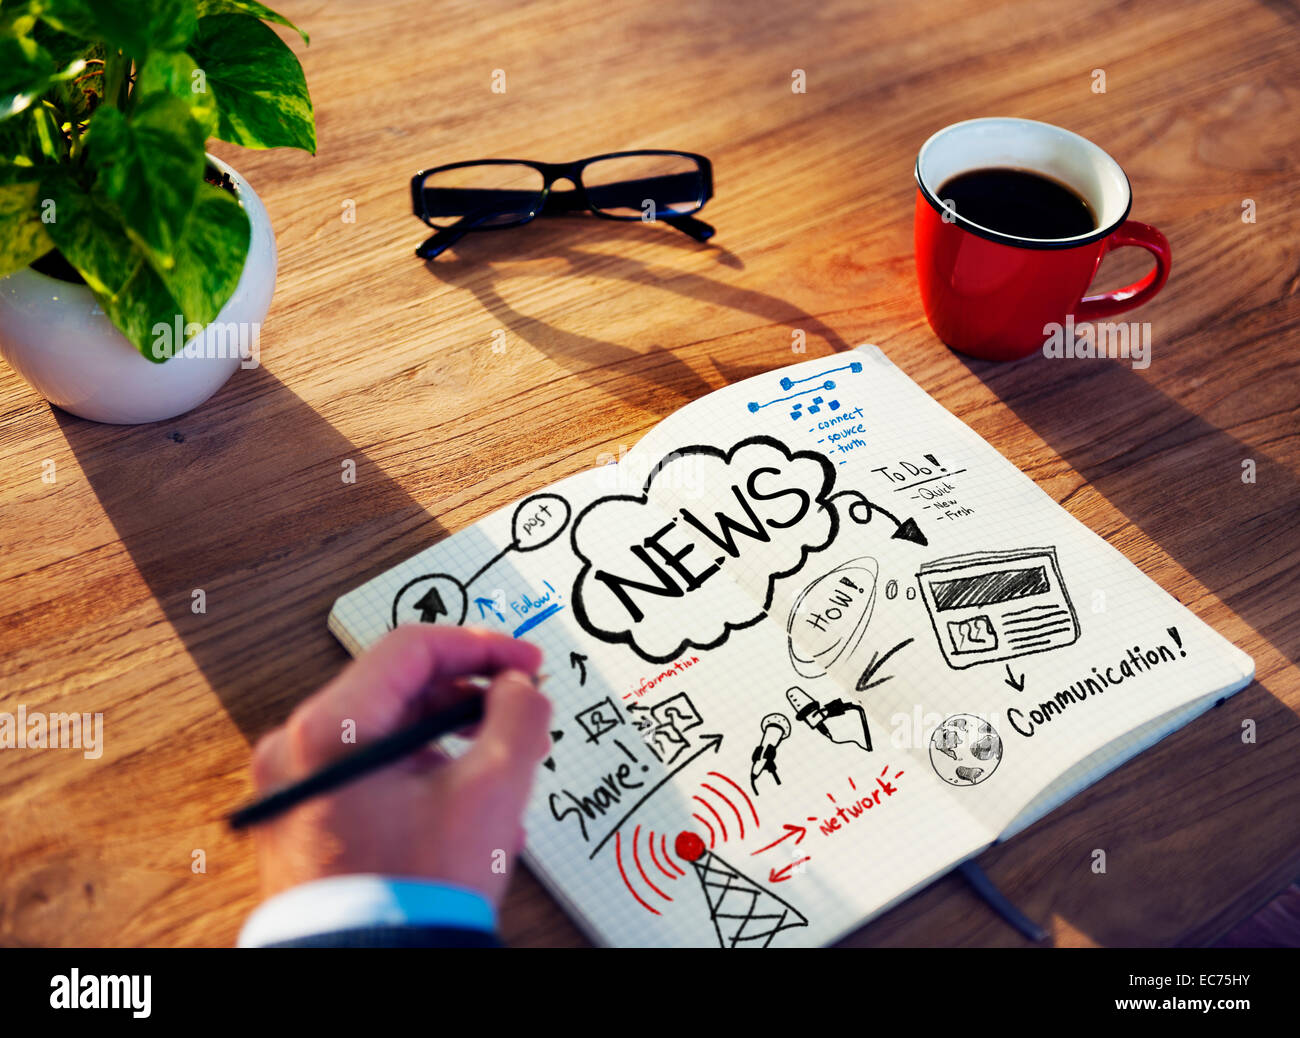 Man Drawing and Working on a News Concept - Stock Image